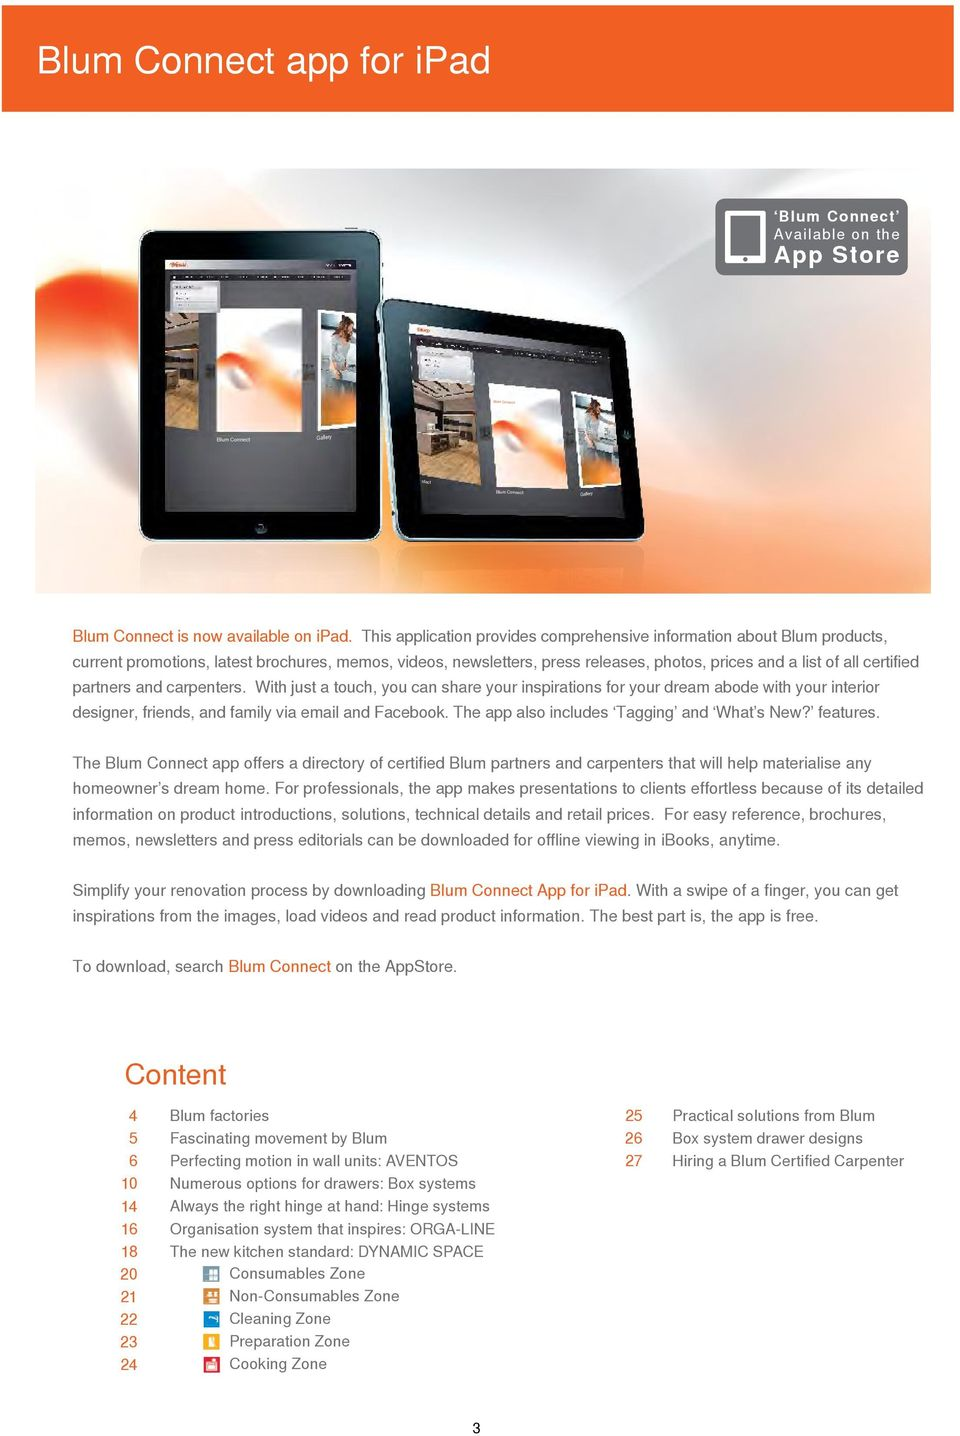 Functionality and design for your kitchen with Blum - PDF